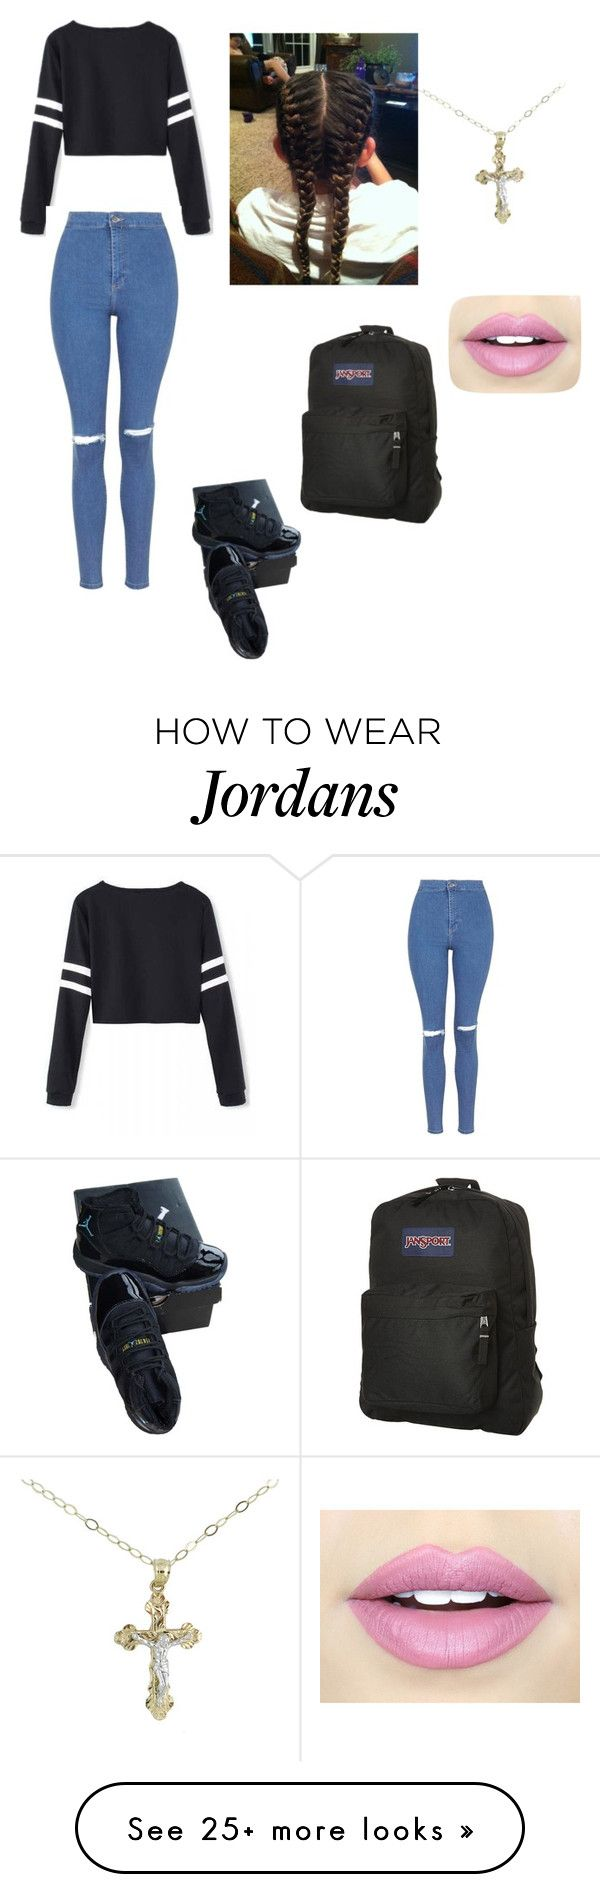 """""""Party's all day tommarow in school"""" by cy010604 on Polyvore featuring NIKE, Topshop, JanSport and Fiebiger"""